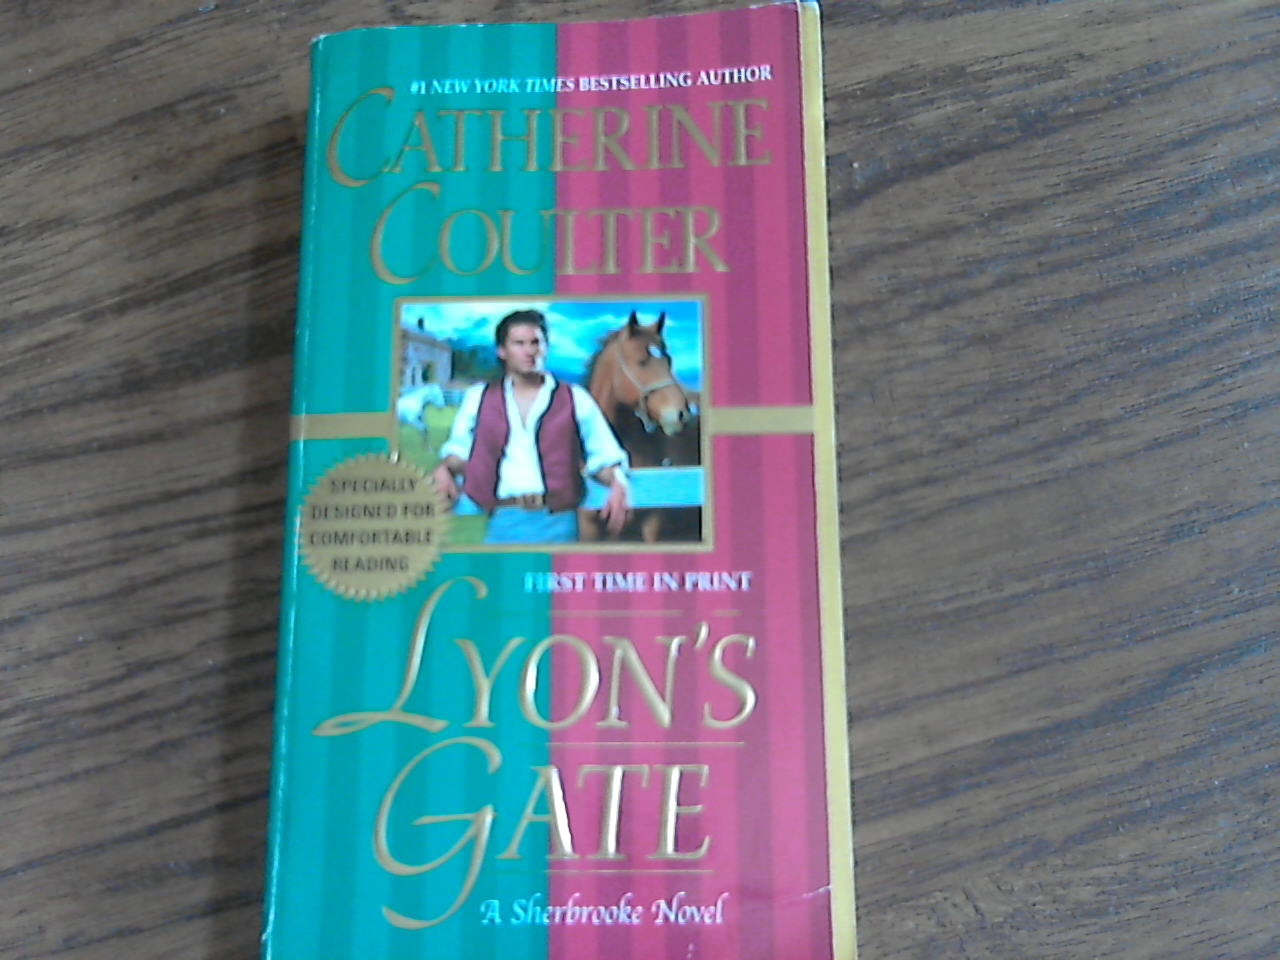 Primary image for Lyon's Gate By Catherine Coulter (2005 Paperback)